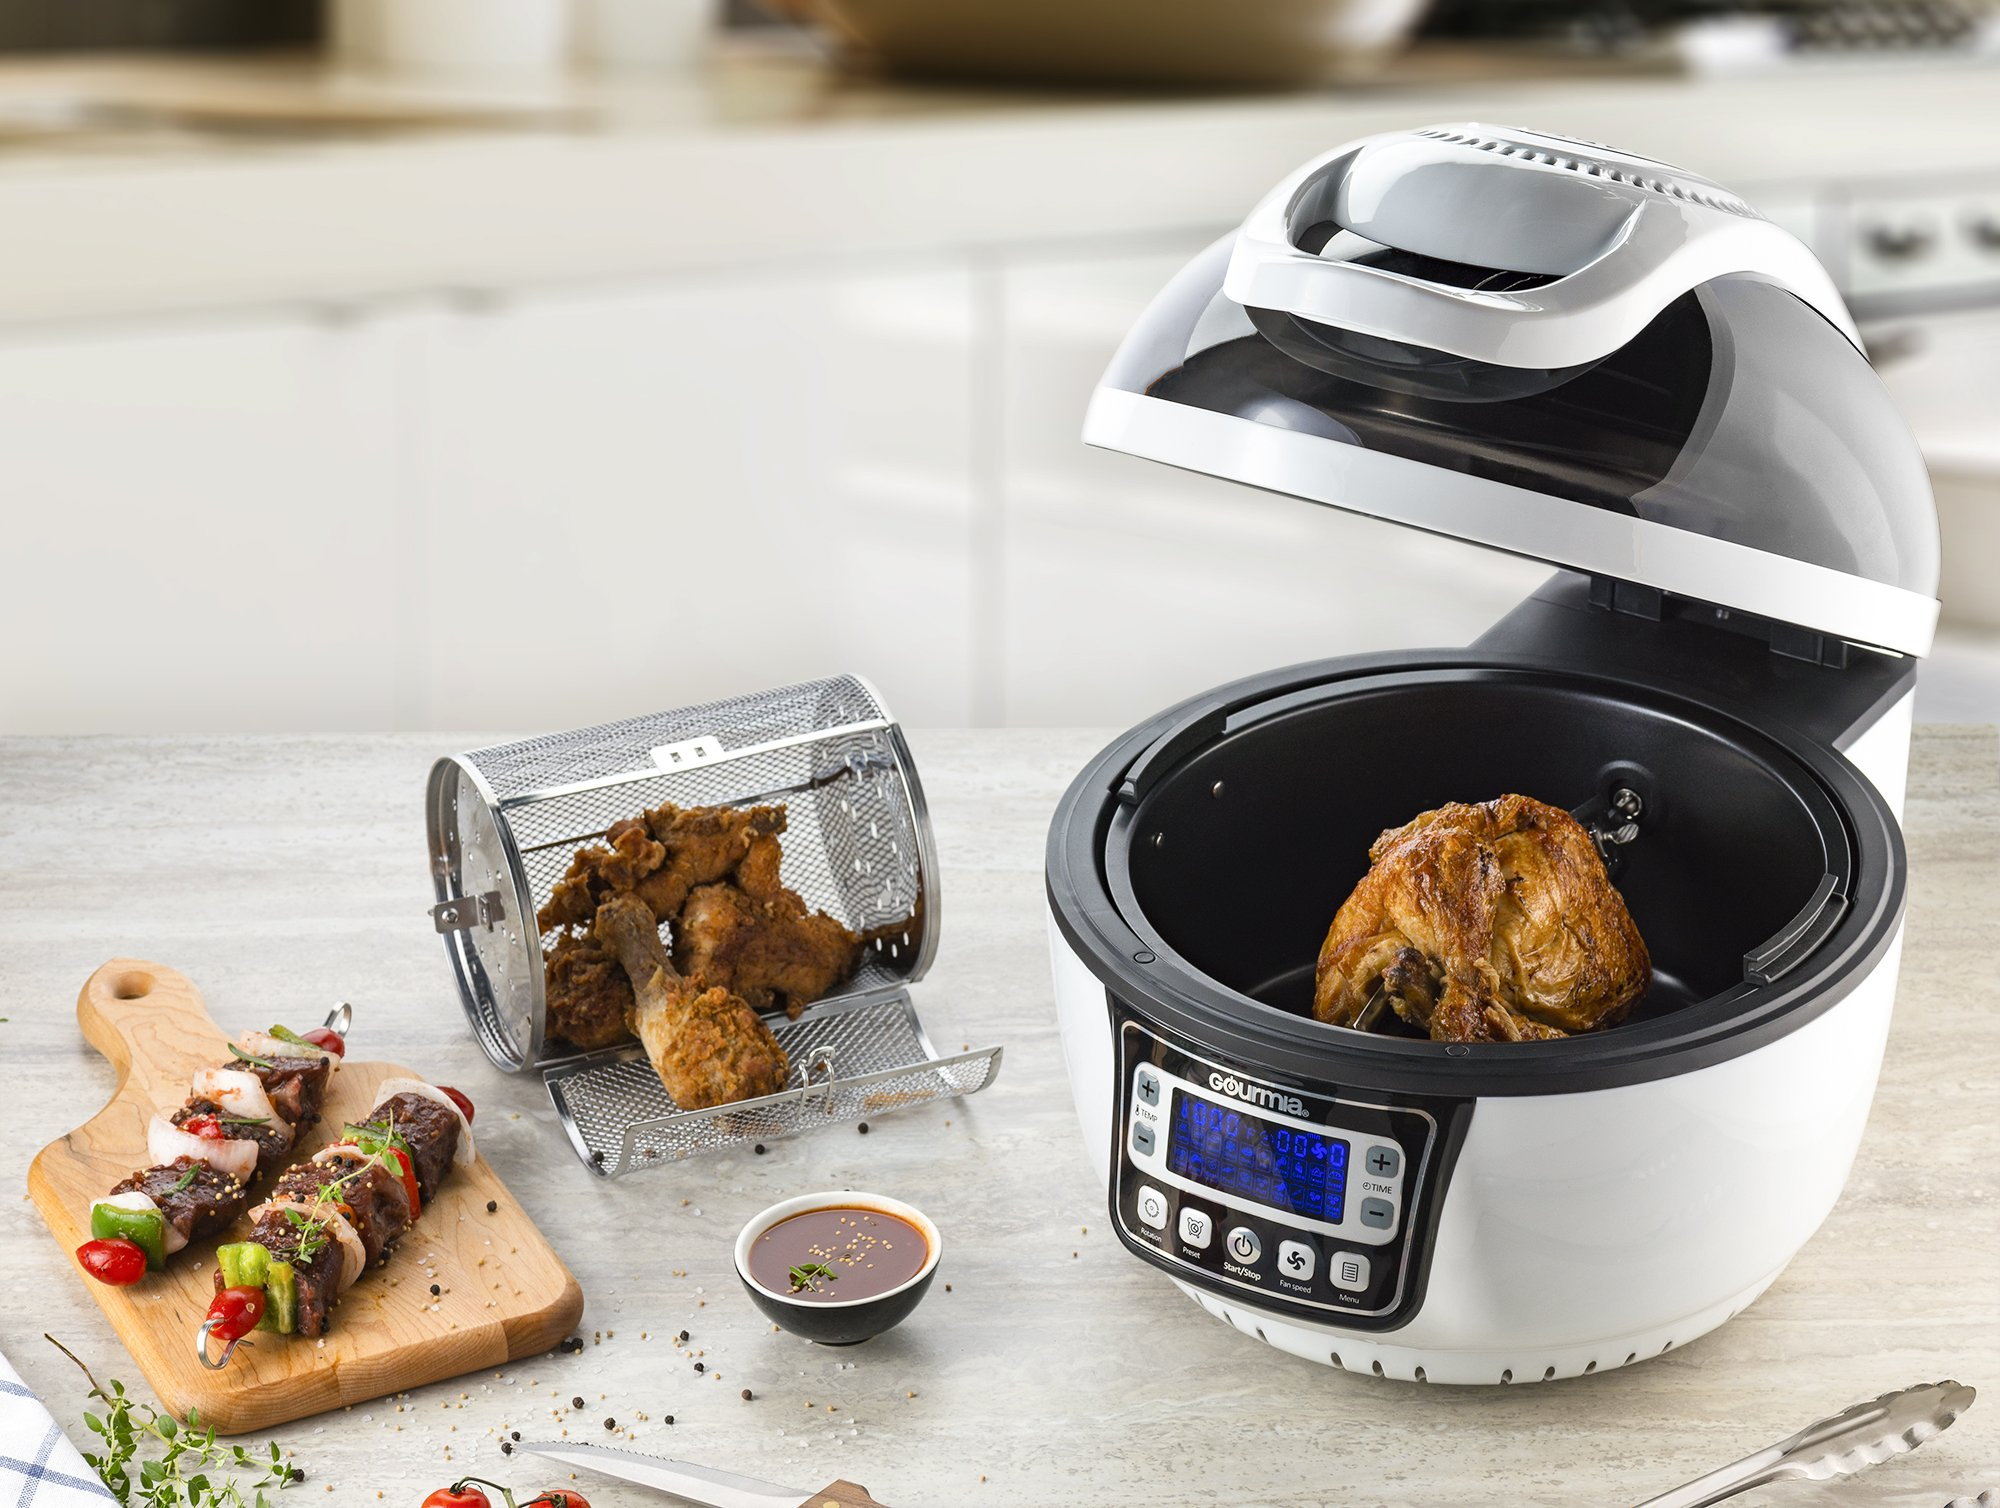 Gourmia GTA2800 WiFi Air Fryer - Multi Function Halogen Powered Rotating Rotisserie Grill & Electric Oven, 20 Cooking Functions, Programmable Timer, Includes 11pc Kit & Free Recipe Book - 110V by Gourmia (Image #2)